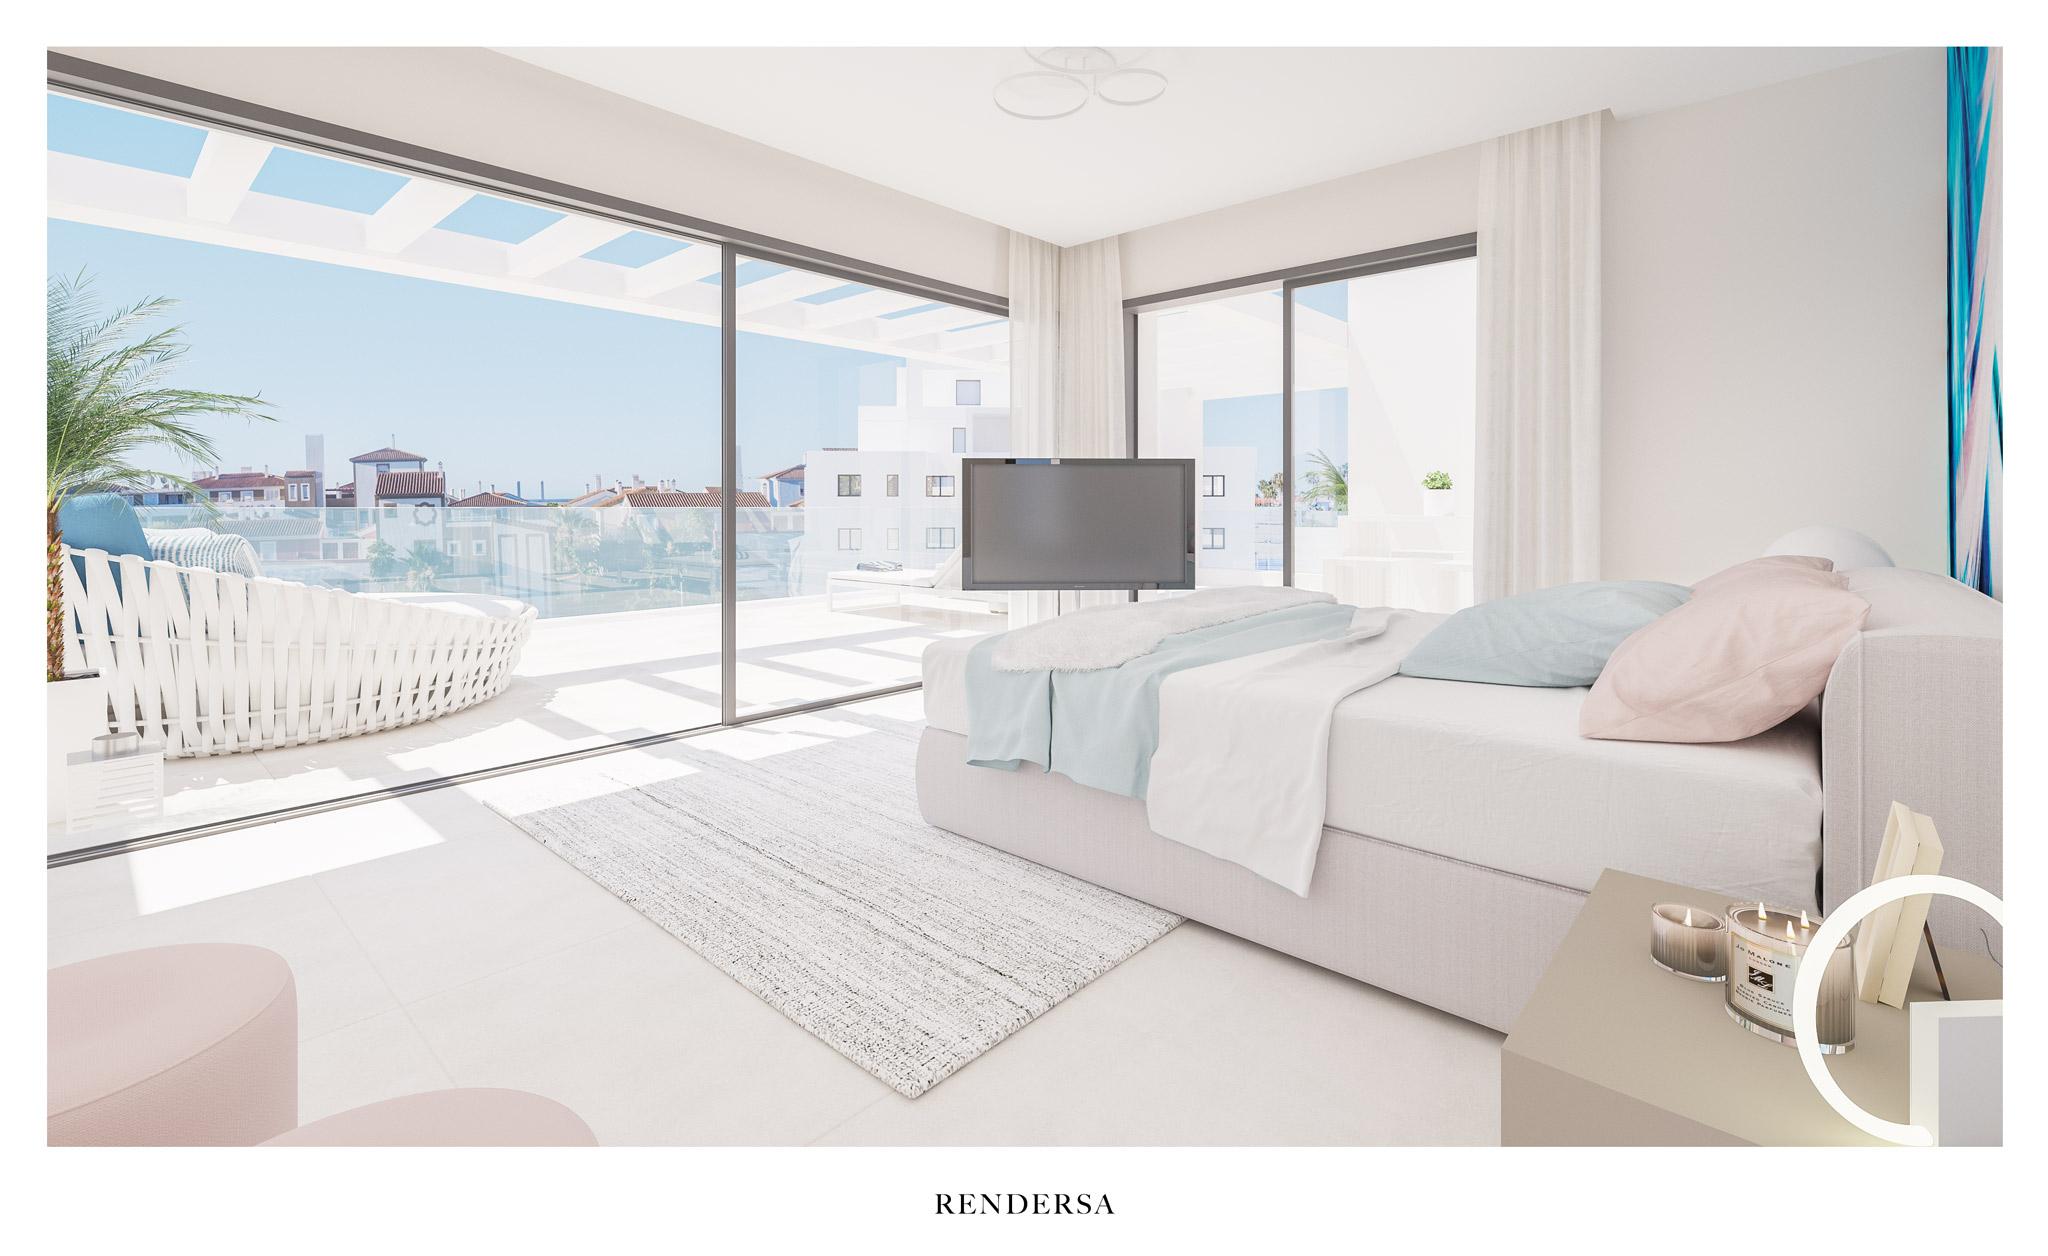 Exterior: 3D Renderings Real Estate Development In Marbella